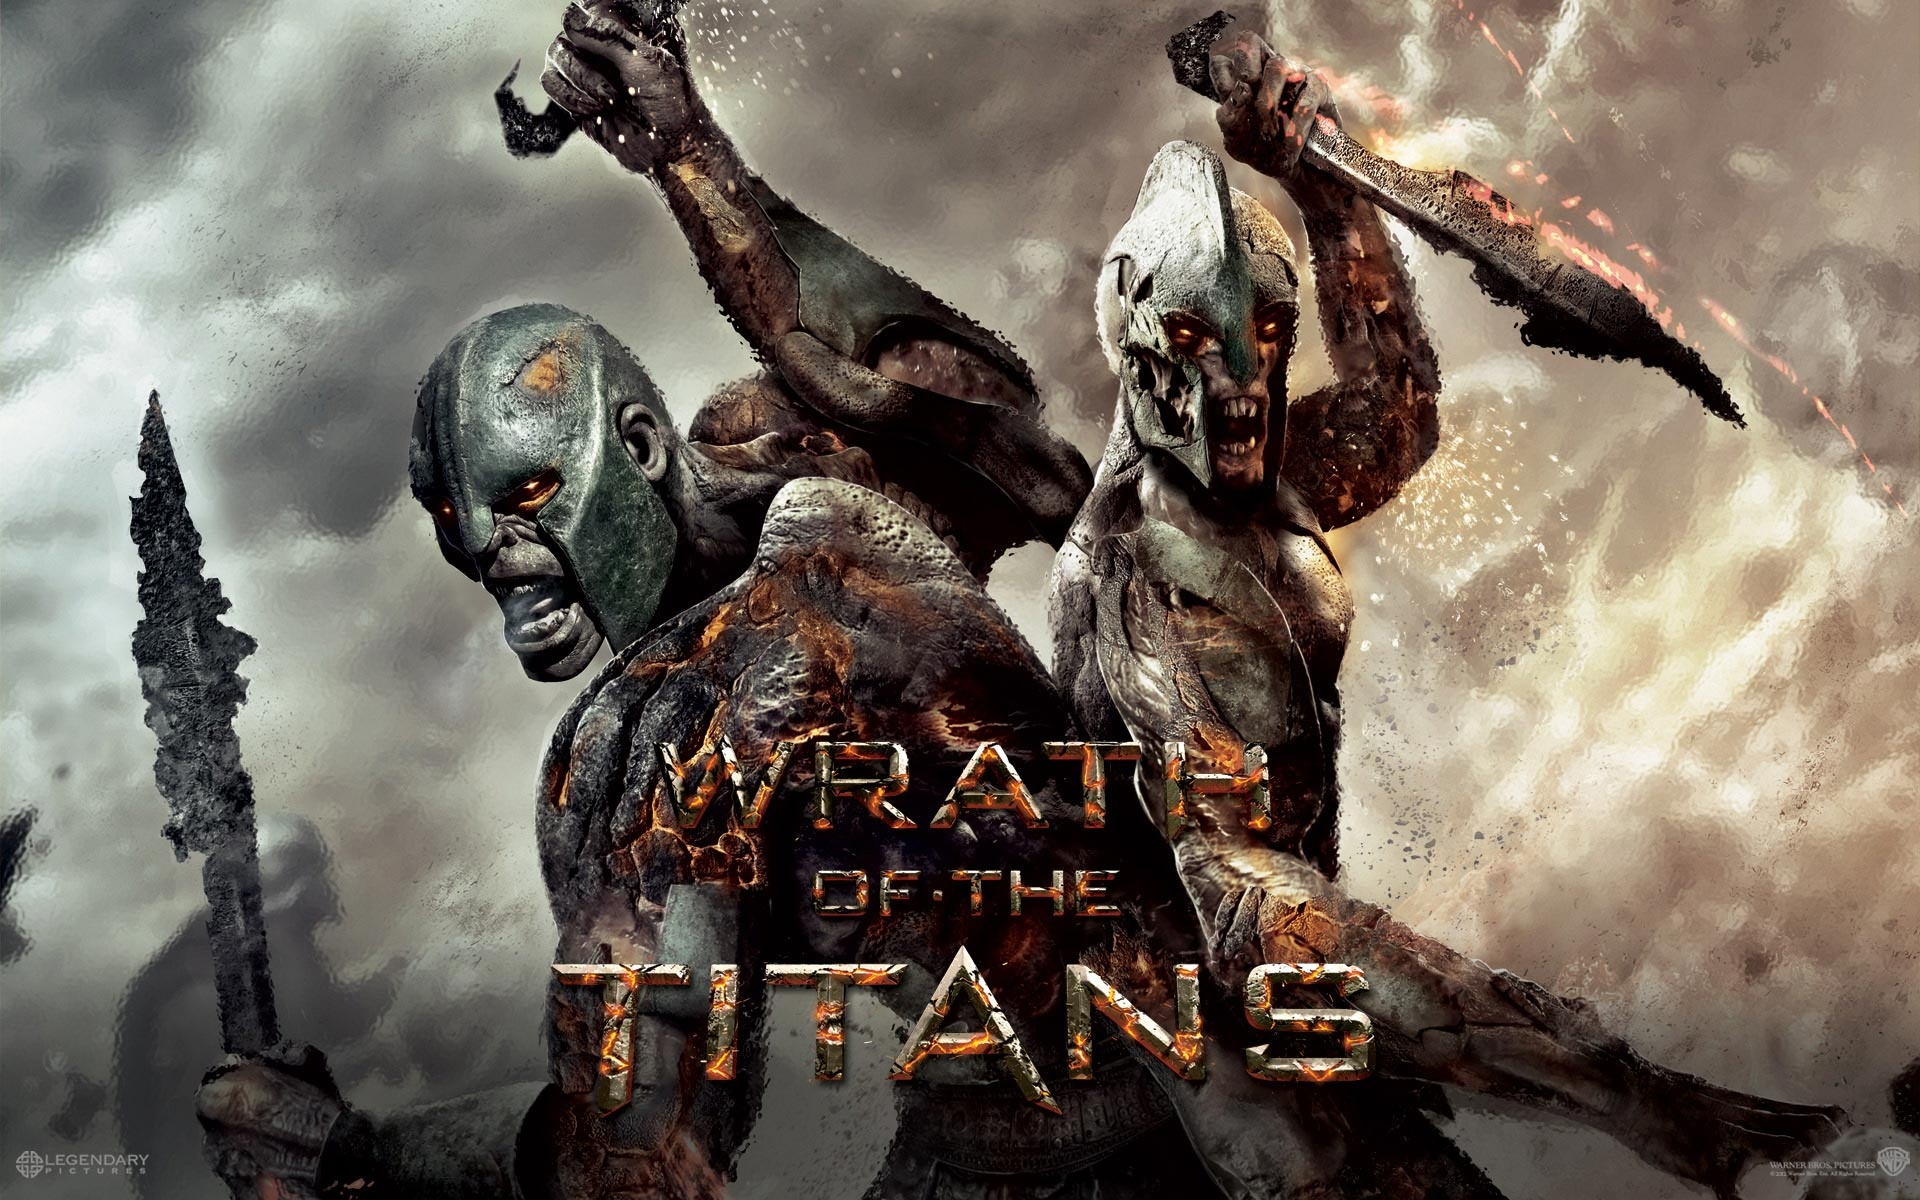 Wrath of the titans (2012) hindi dubbed full movie watch online hd.